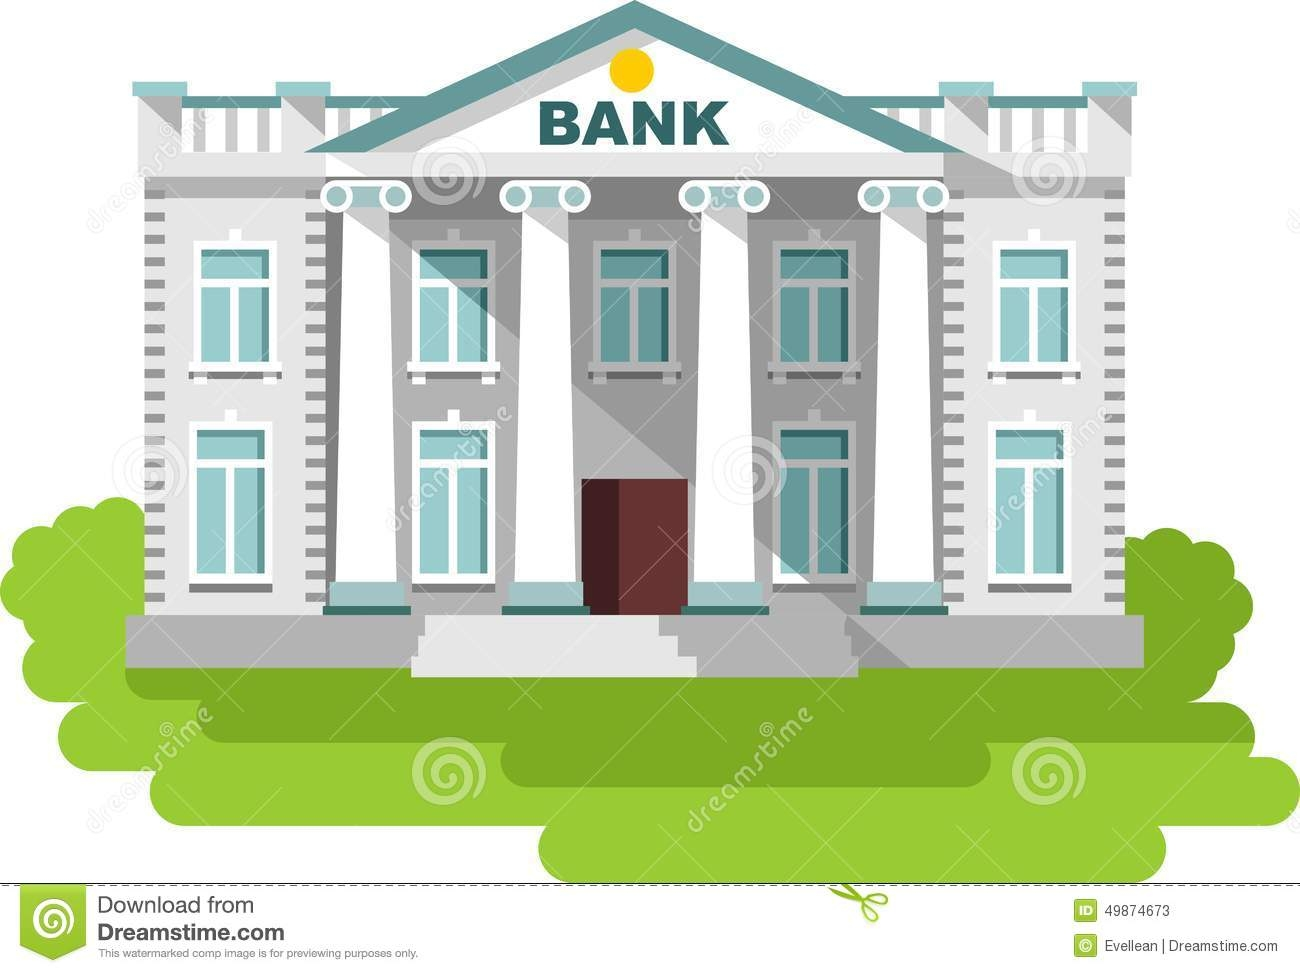 Bank building clipart » Clipart Station.